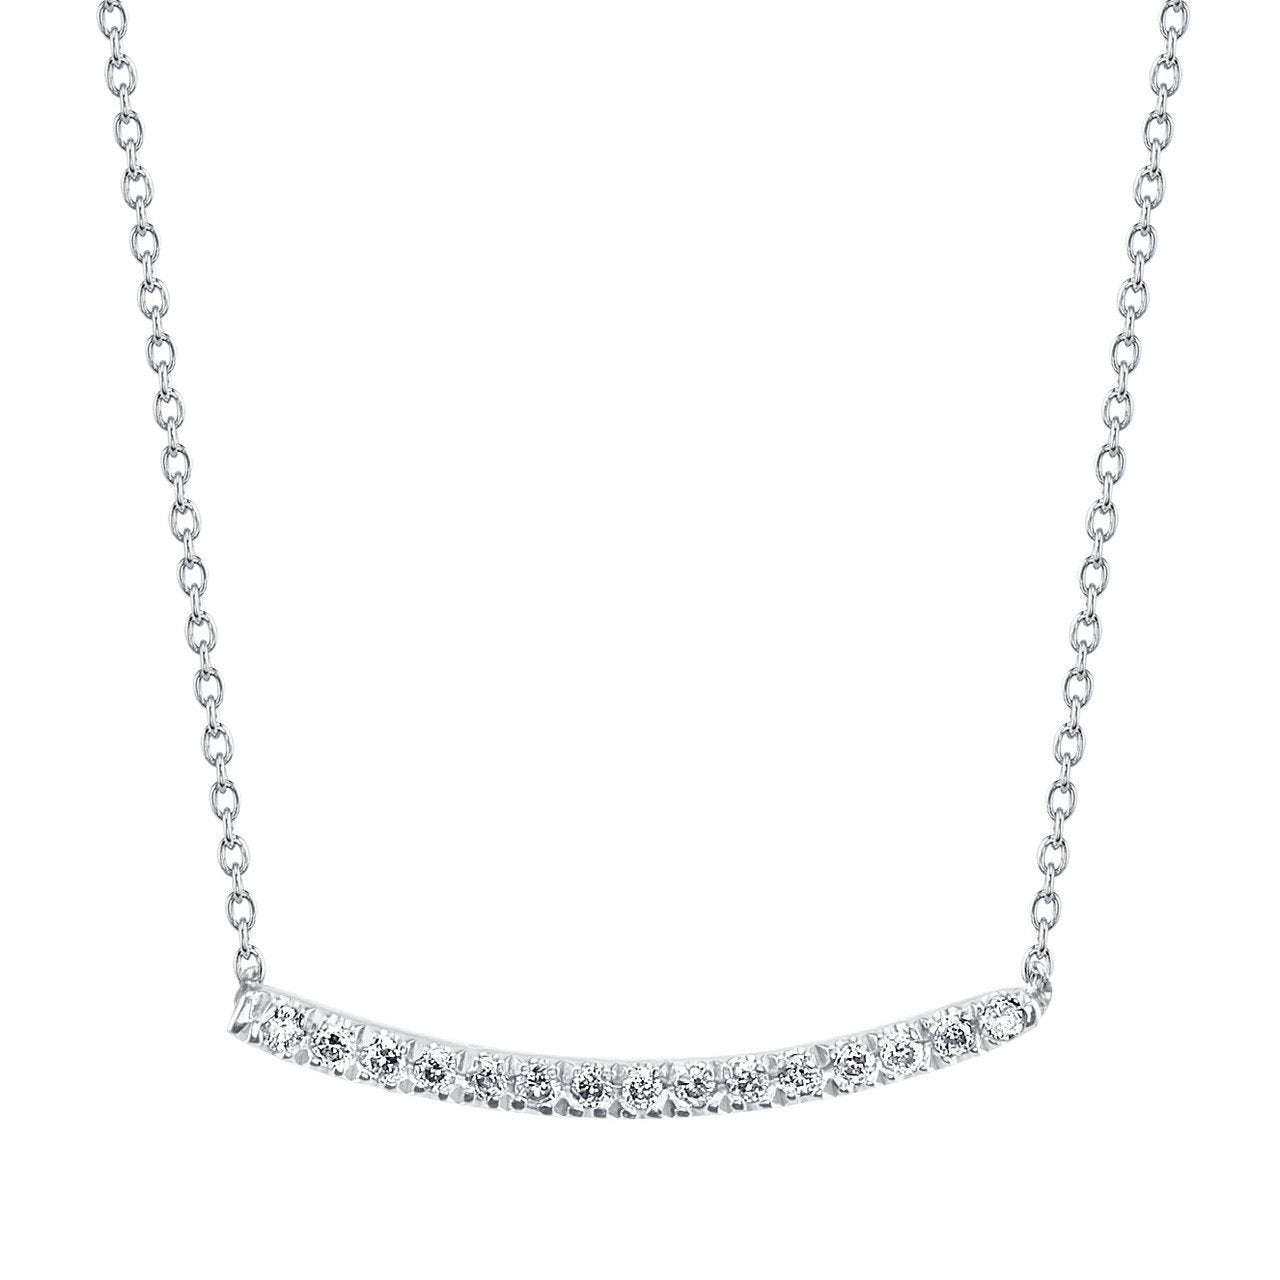 Axis Necklace With White Pavé Diamonds - Gabriela Artigas